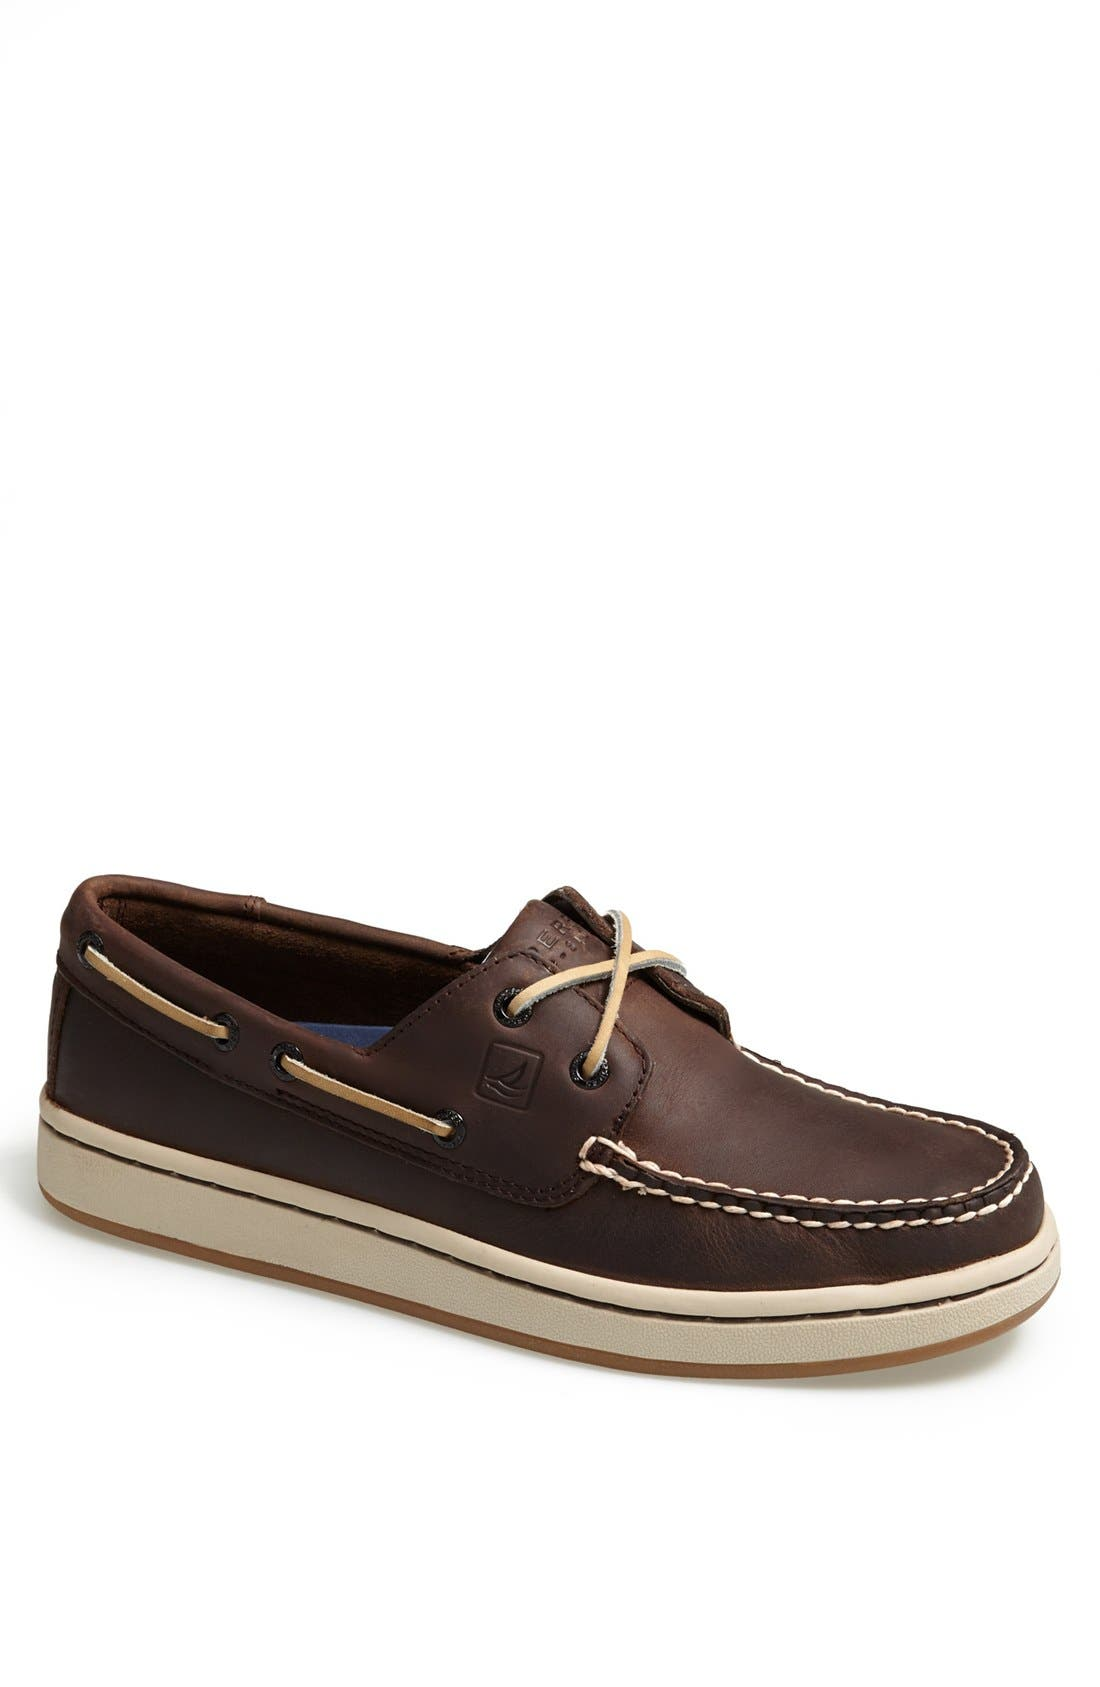 Main Image - Sperry Top-Sider® 'Sperry Cup' Slip-On